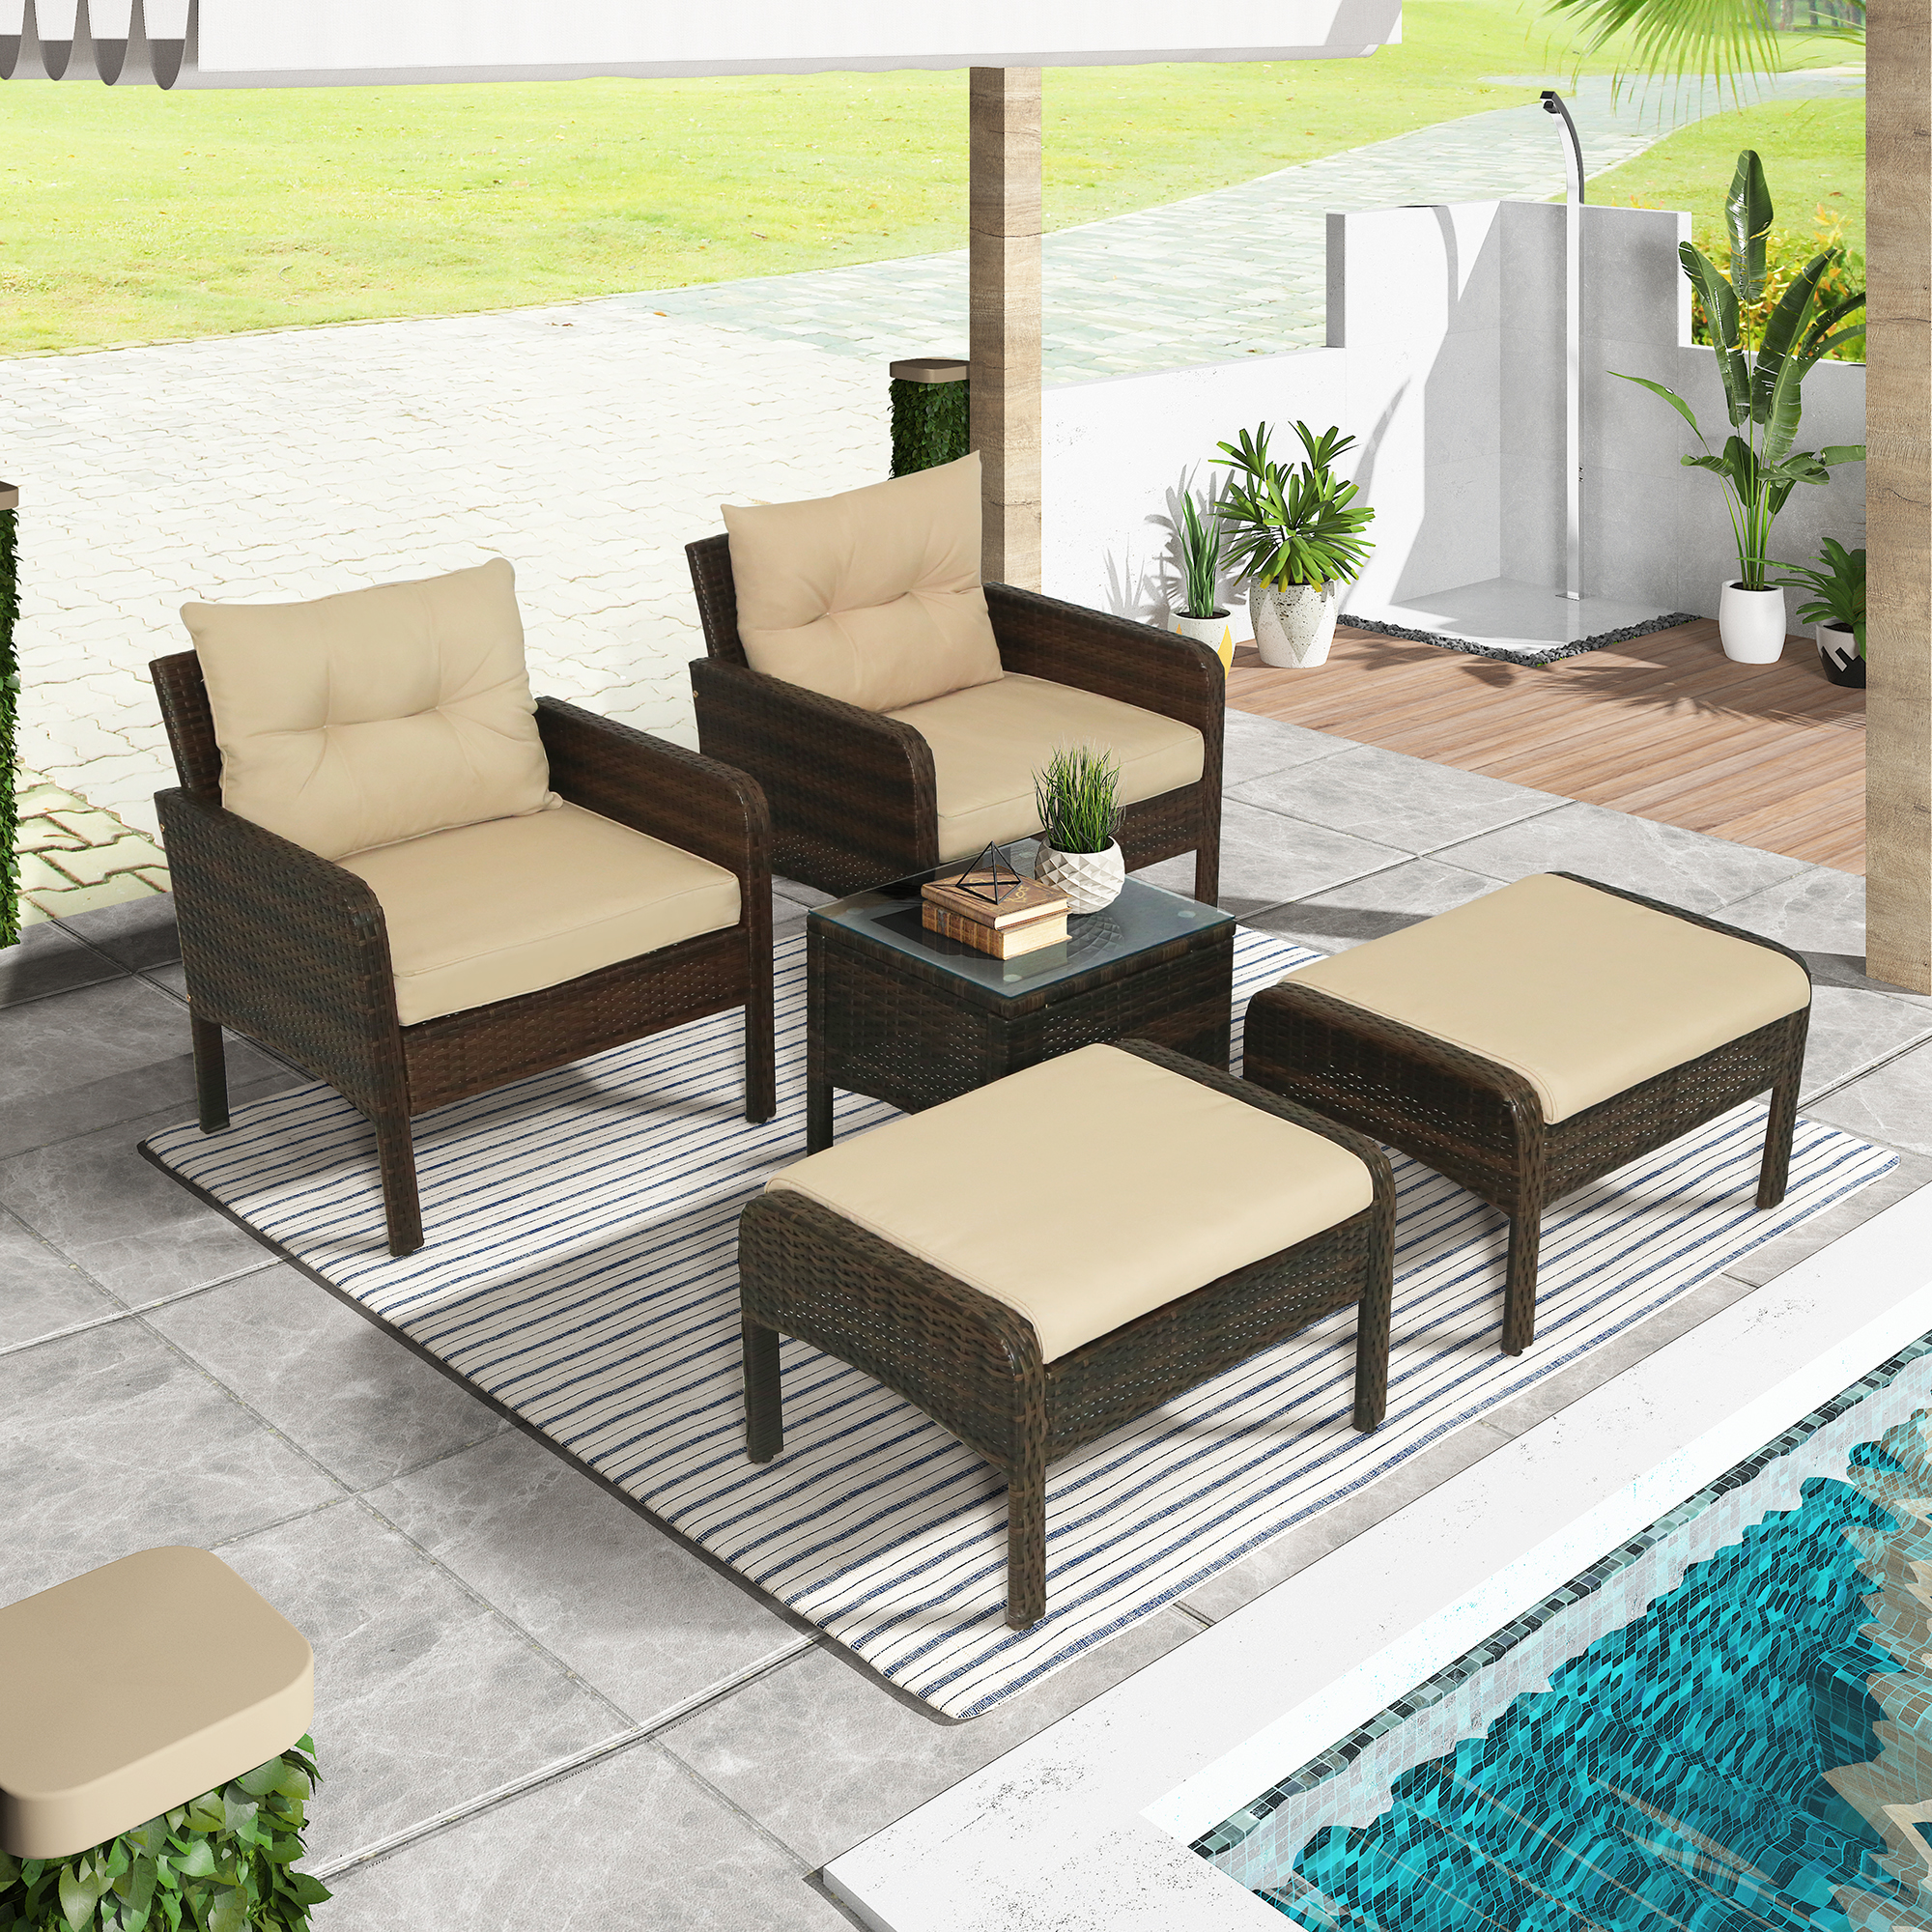 5 Piece Wicker Patio Sofa Set Outdoor All Weather Conversation Set Of 5 With Ottoman Coffee Table Cushioned Deck Chair Set Pe Rattan Lounge Couch For Lawn Patio Pool Balcony Backyard B978